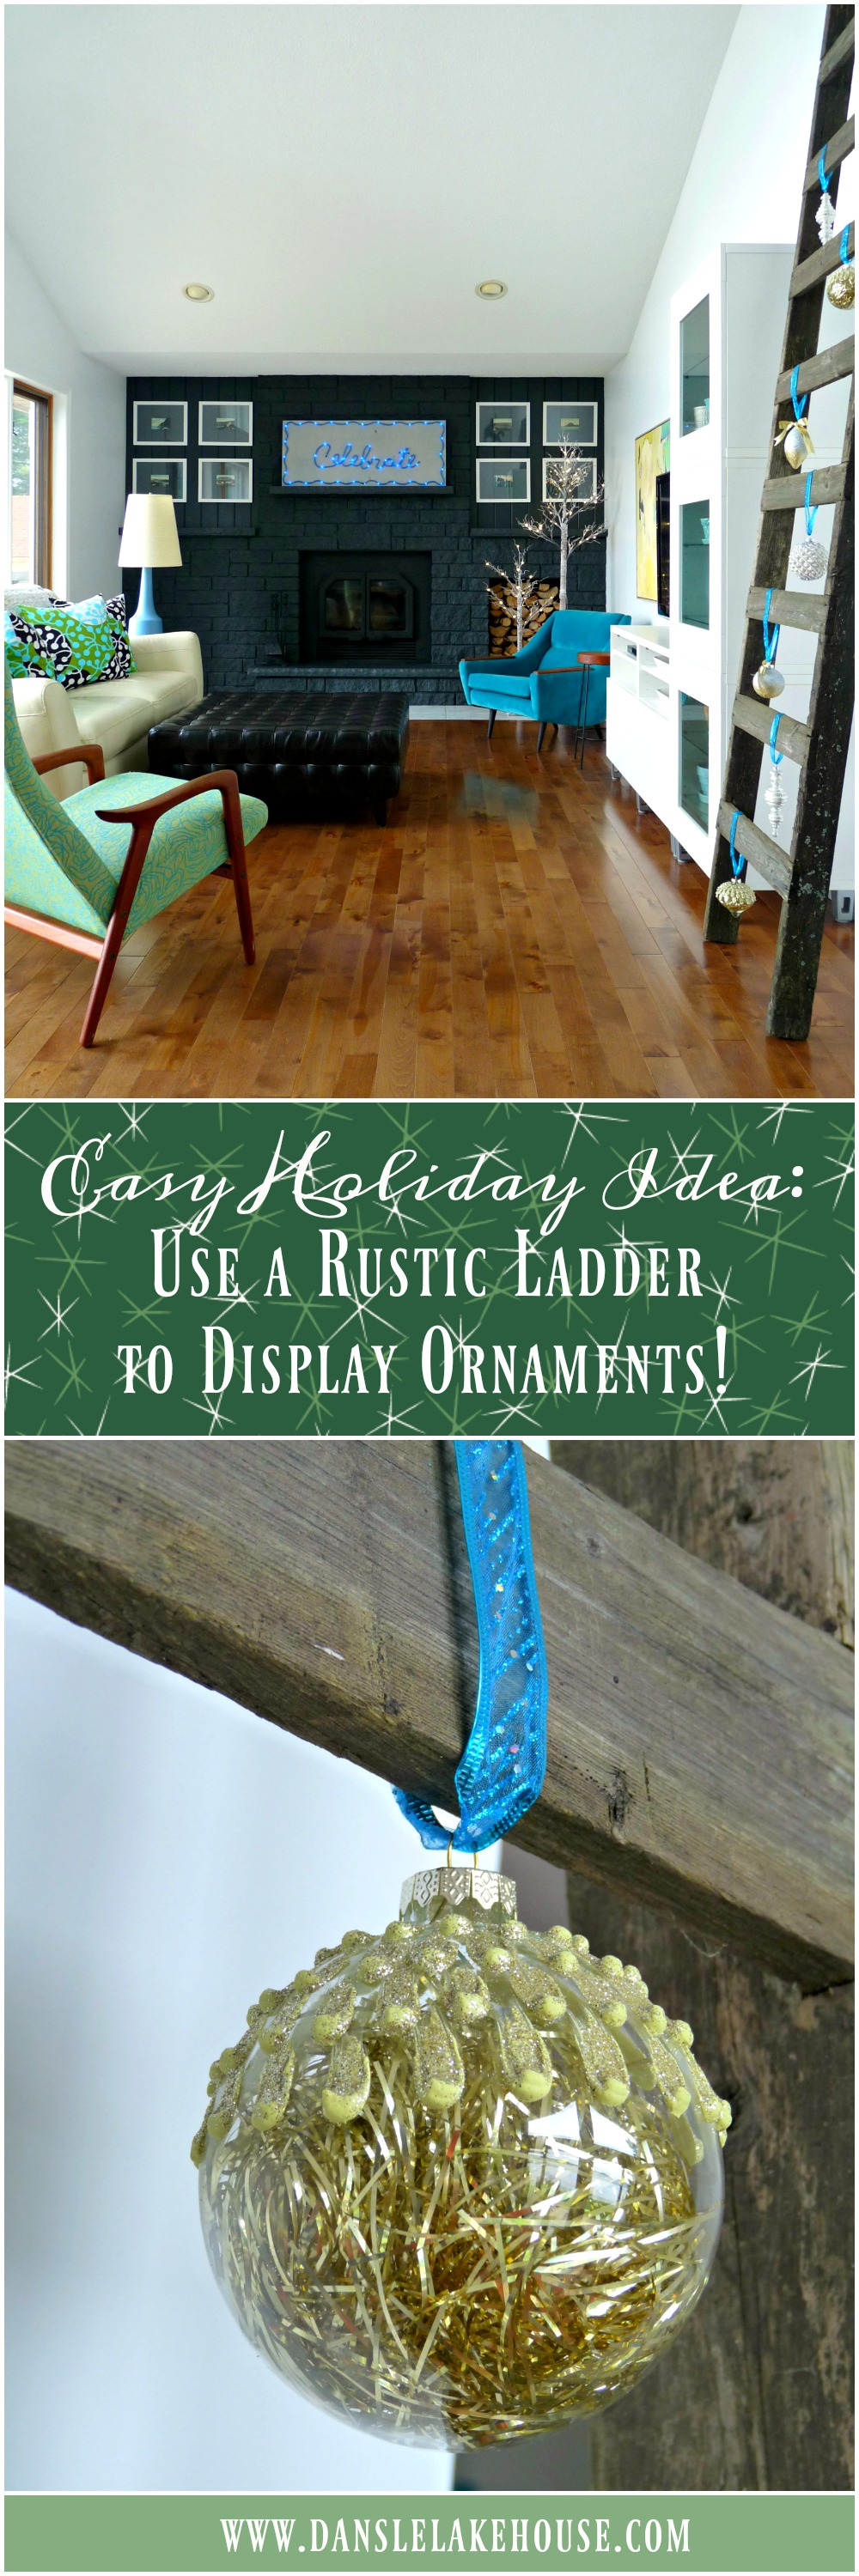 Display Ornaments on a Rustic Ladder